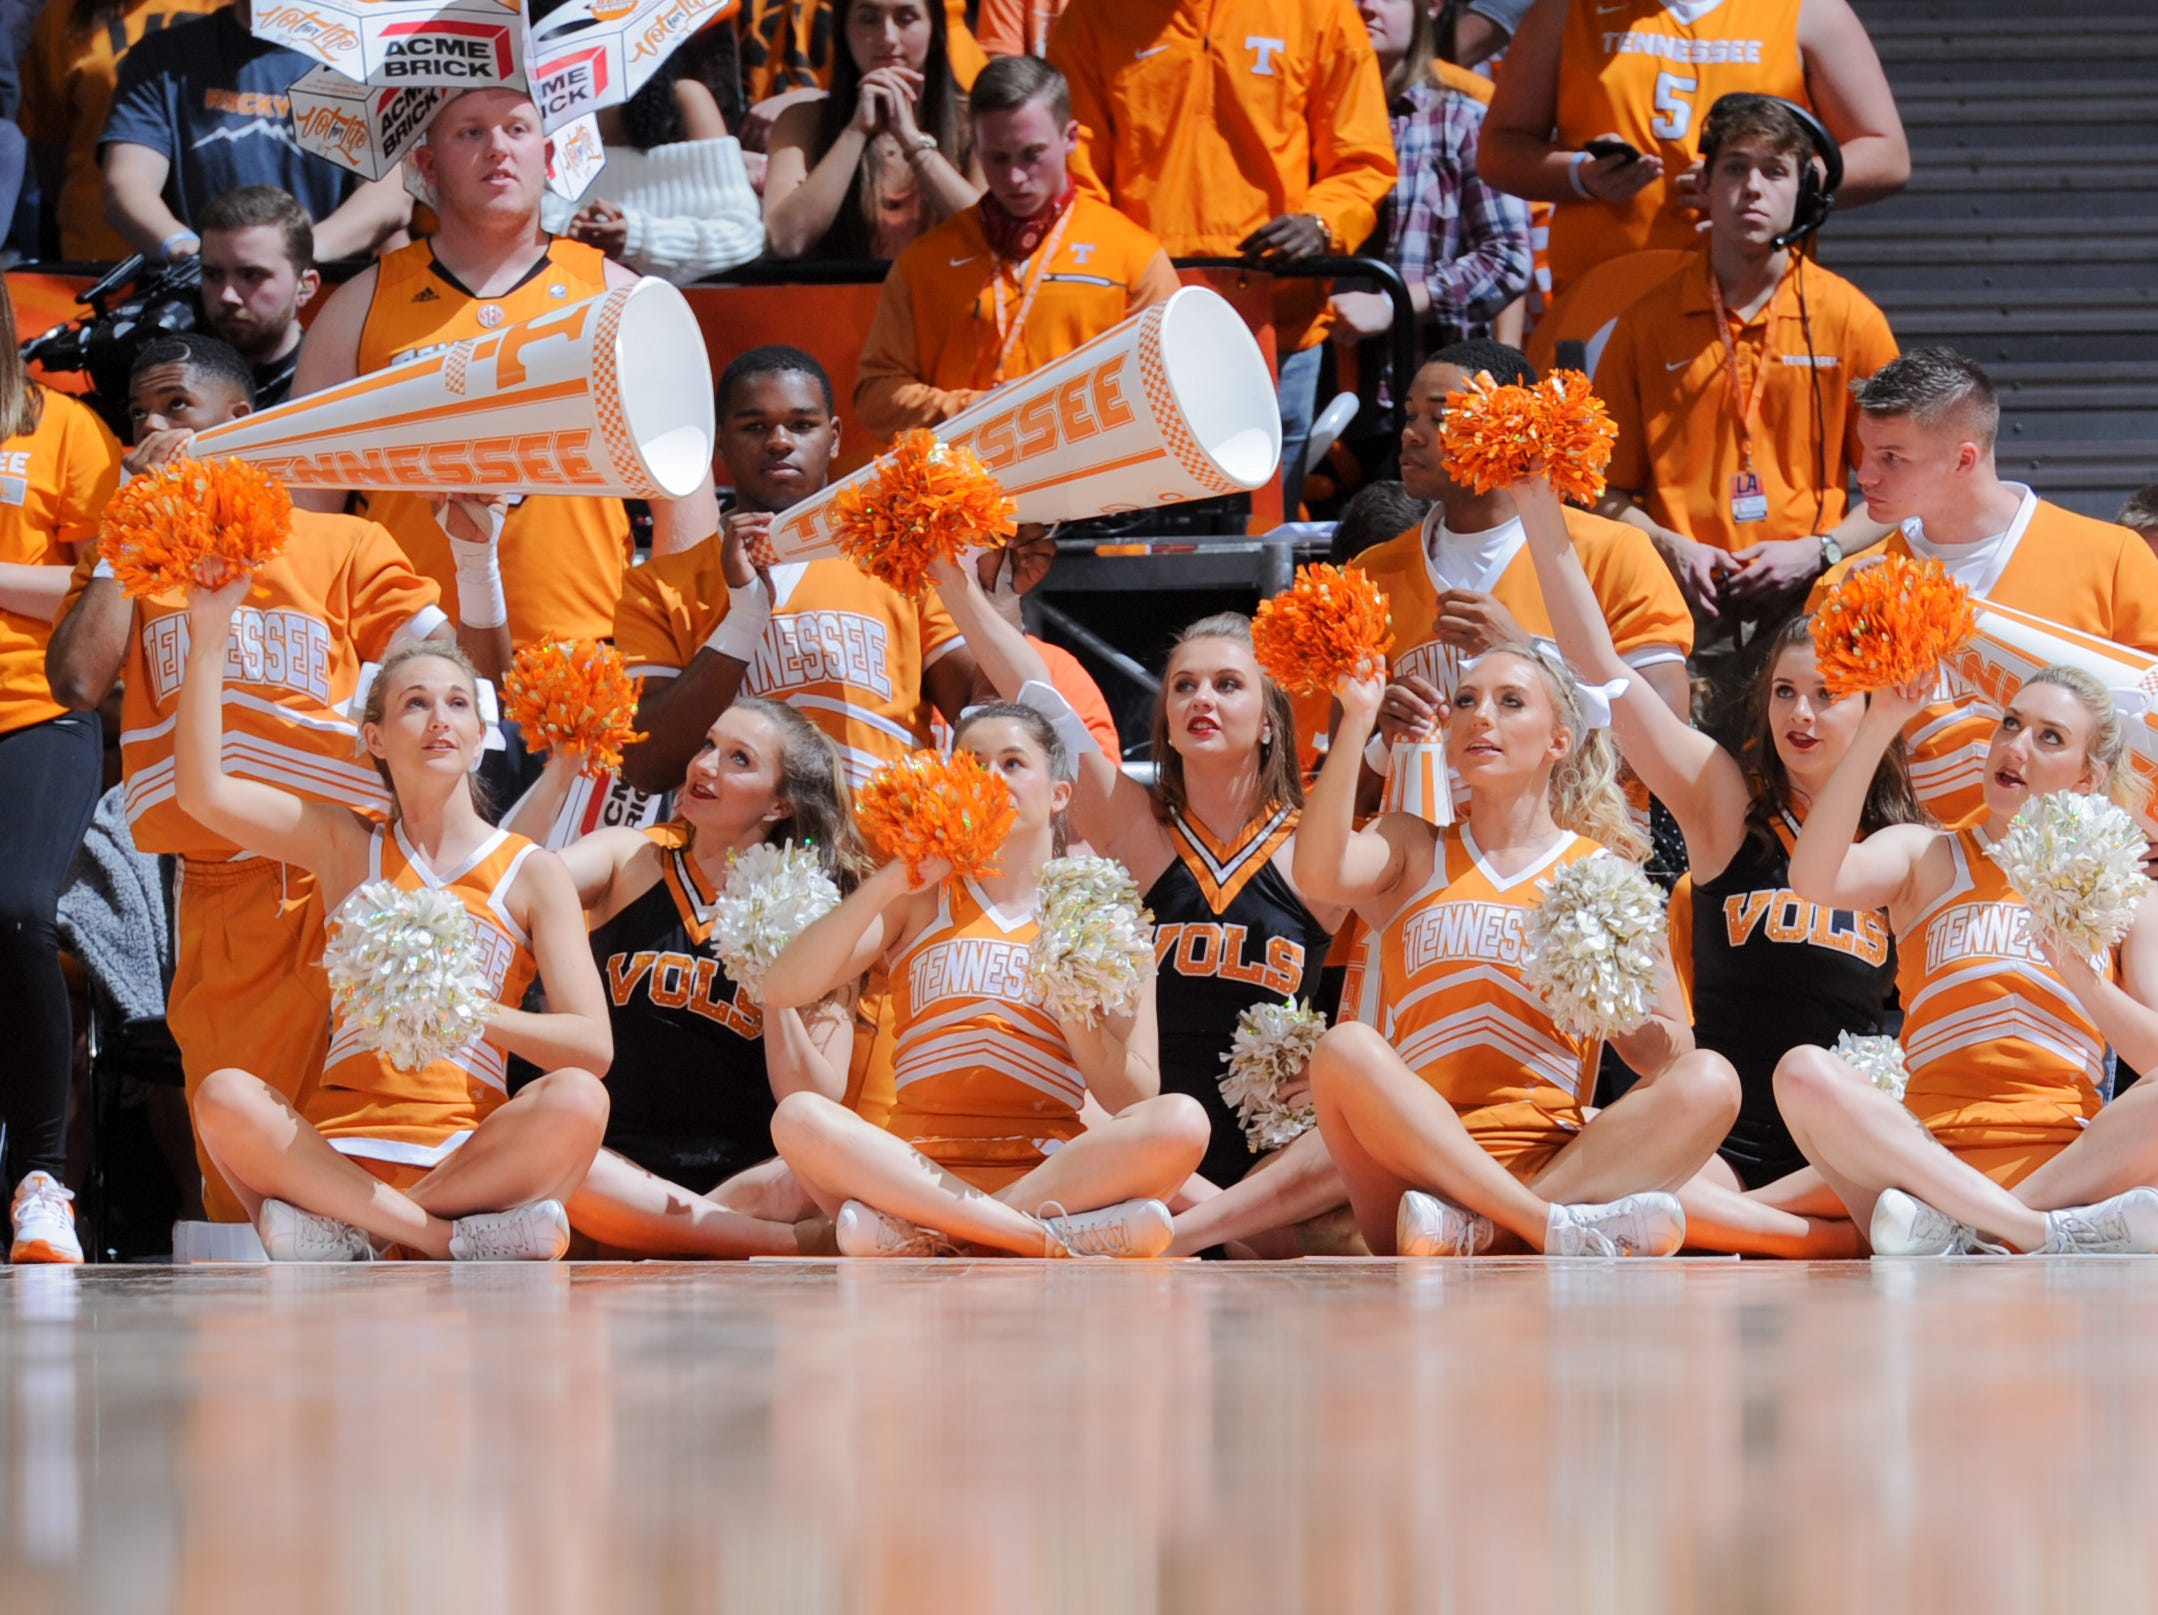 Feb 3, 2018; Knoxville, TN, USA; The Tennessee Volunteers cheerleaders during the second half against the Mississippi Rebels at Thompson-Boling Arena. Tennessee won 94 to 61.